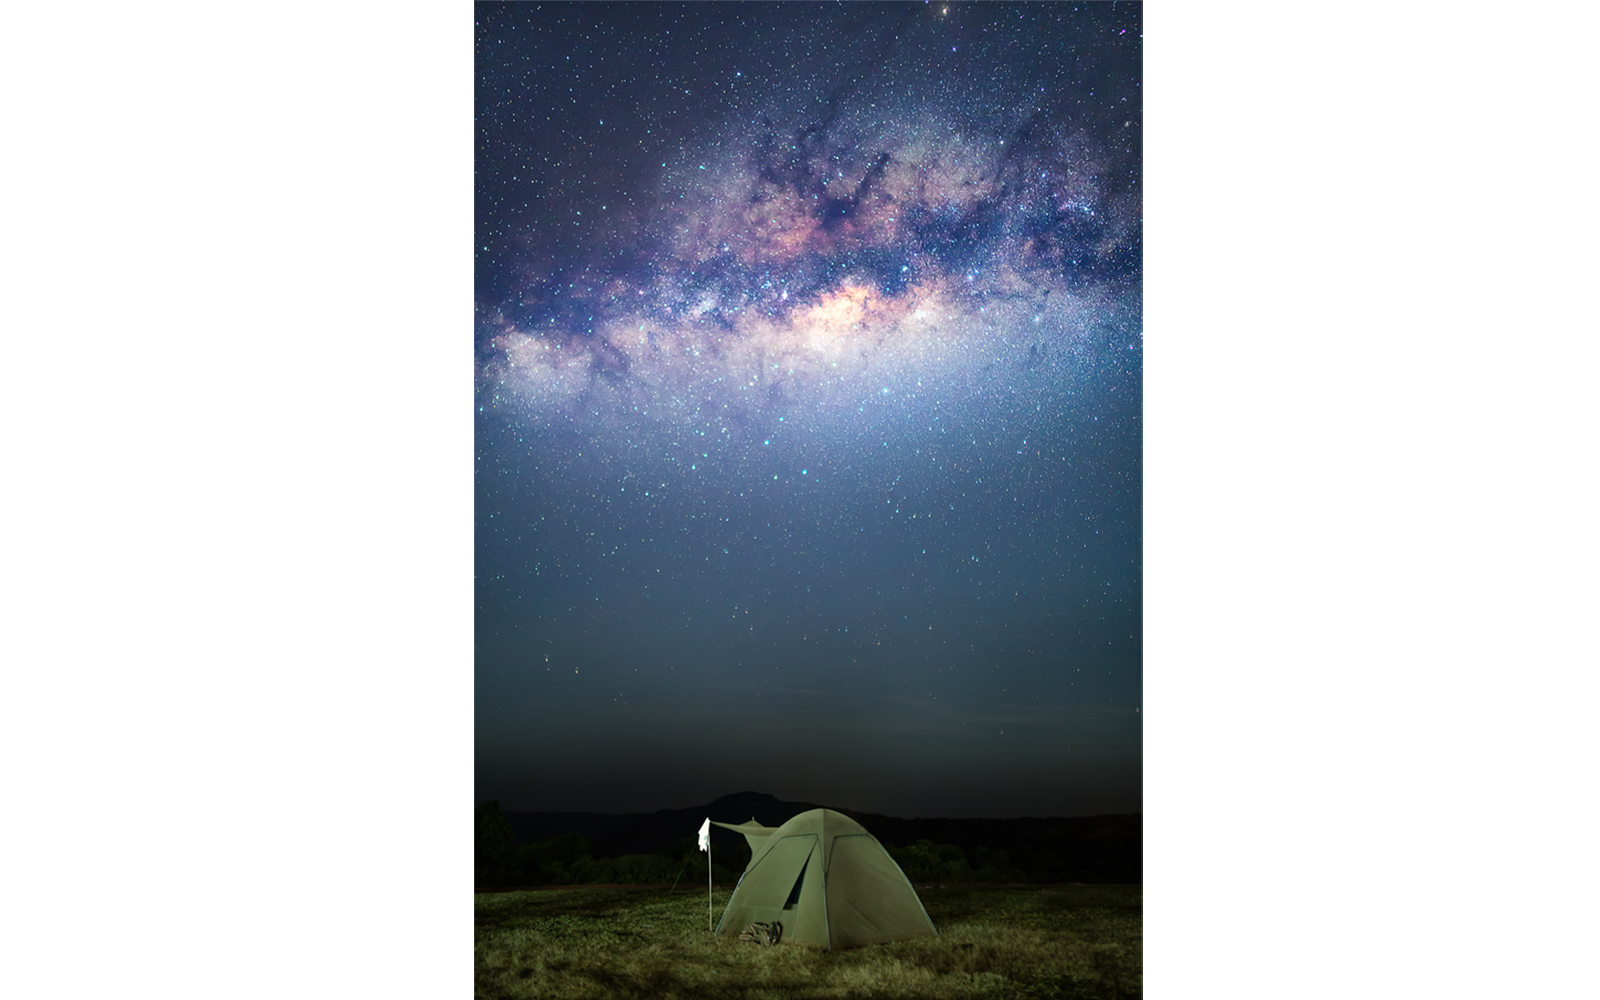 Camping below the beautiful Milky Way in the Ngorogoro Crater, Tanzania ©Mikkel Beiter